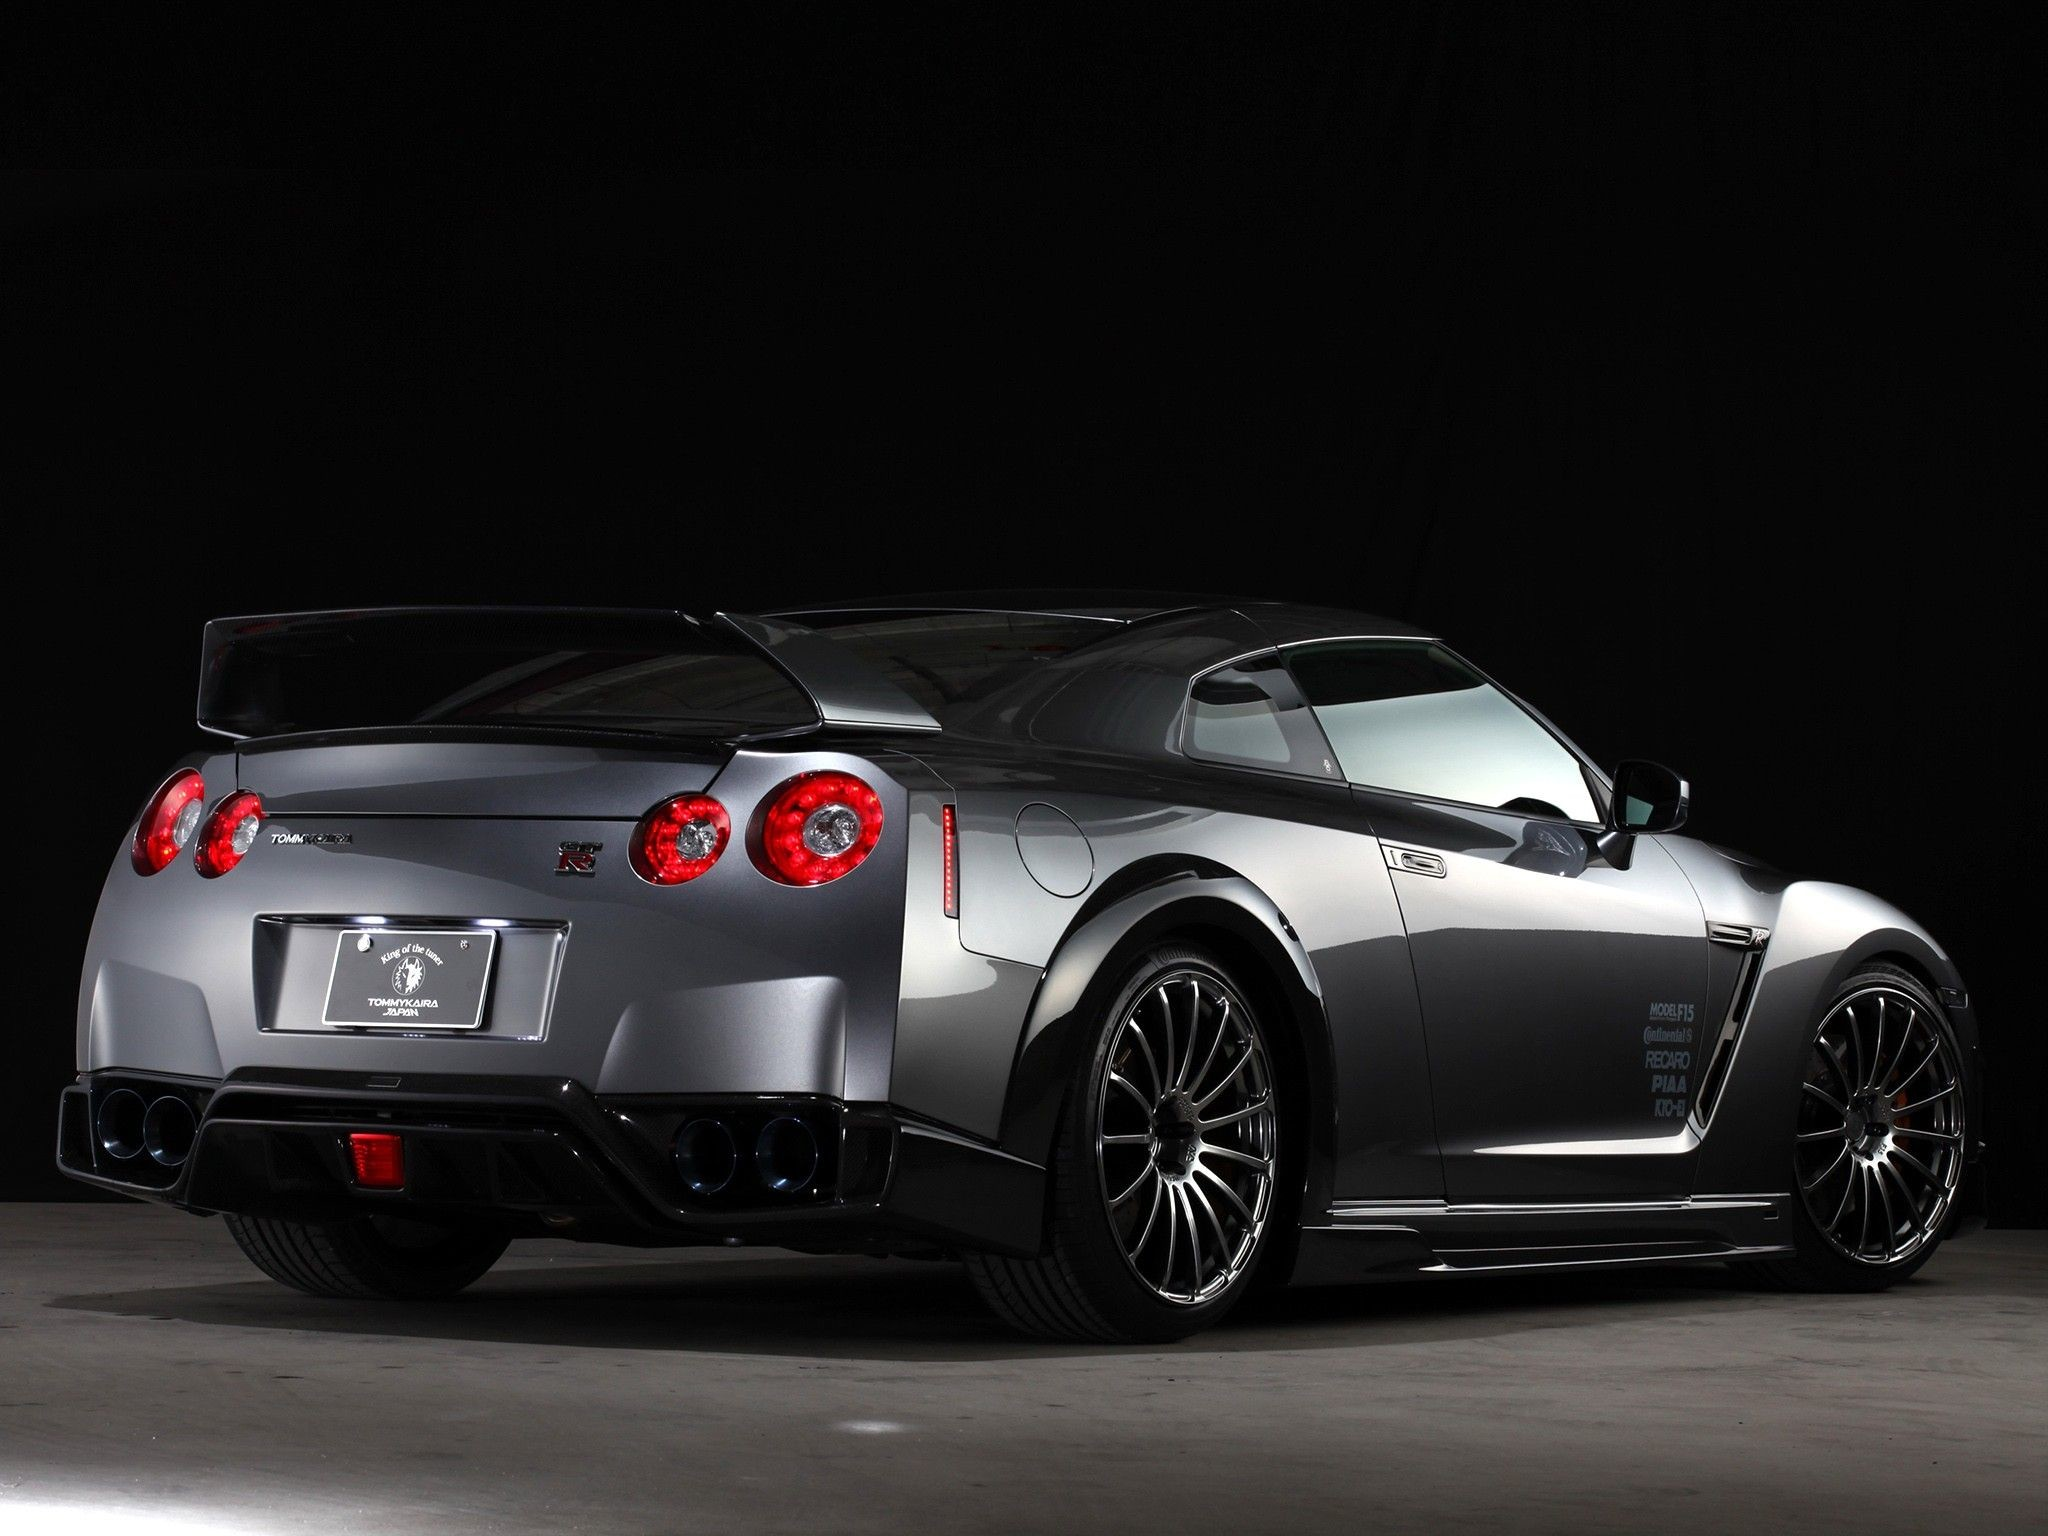 nissan gt-r r35 skyline cars tuning best widescreen #aodZ